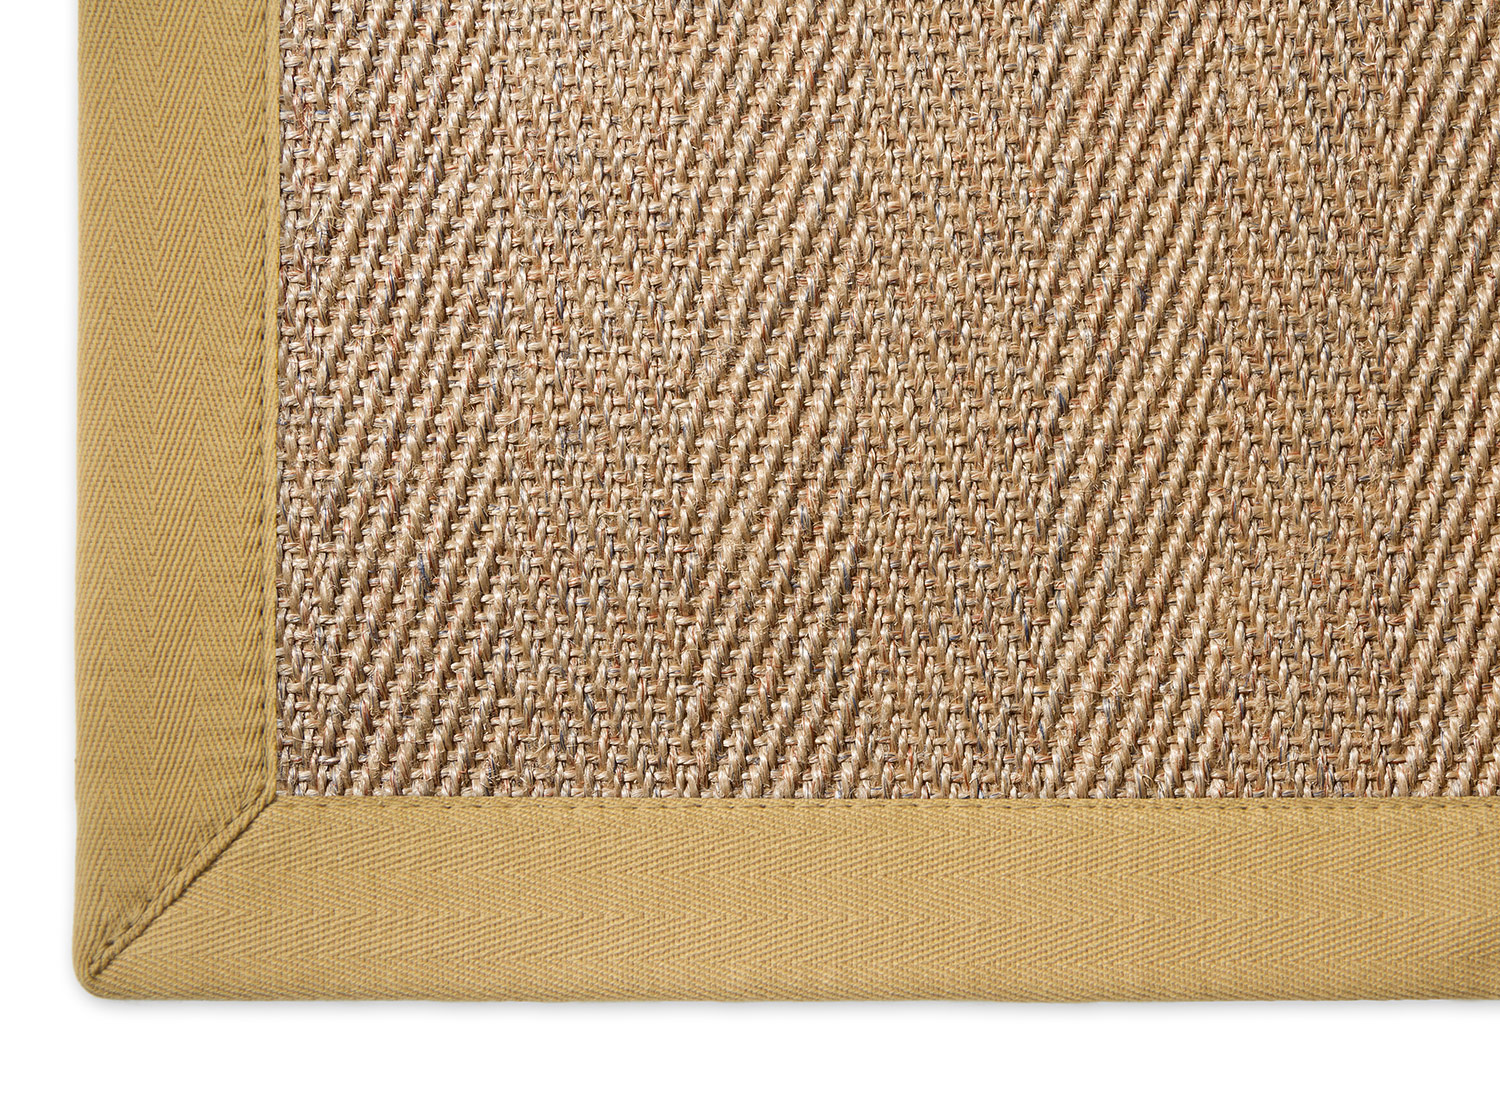 Sisal Teppich Brazil Global Carpet - Sisal Teppich Meterware